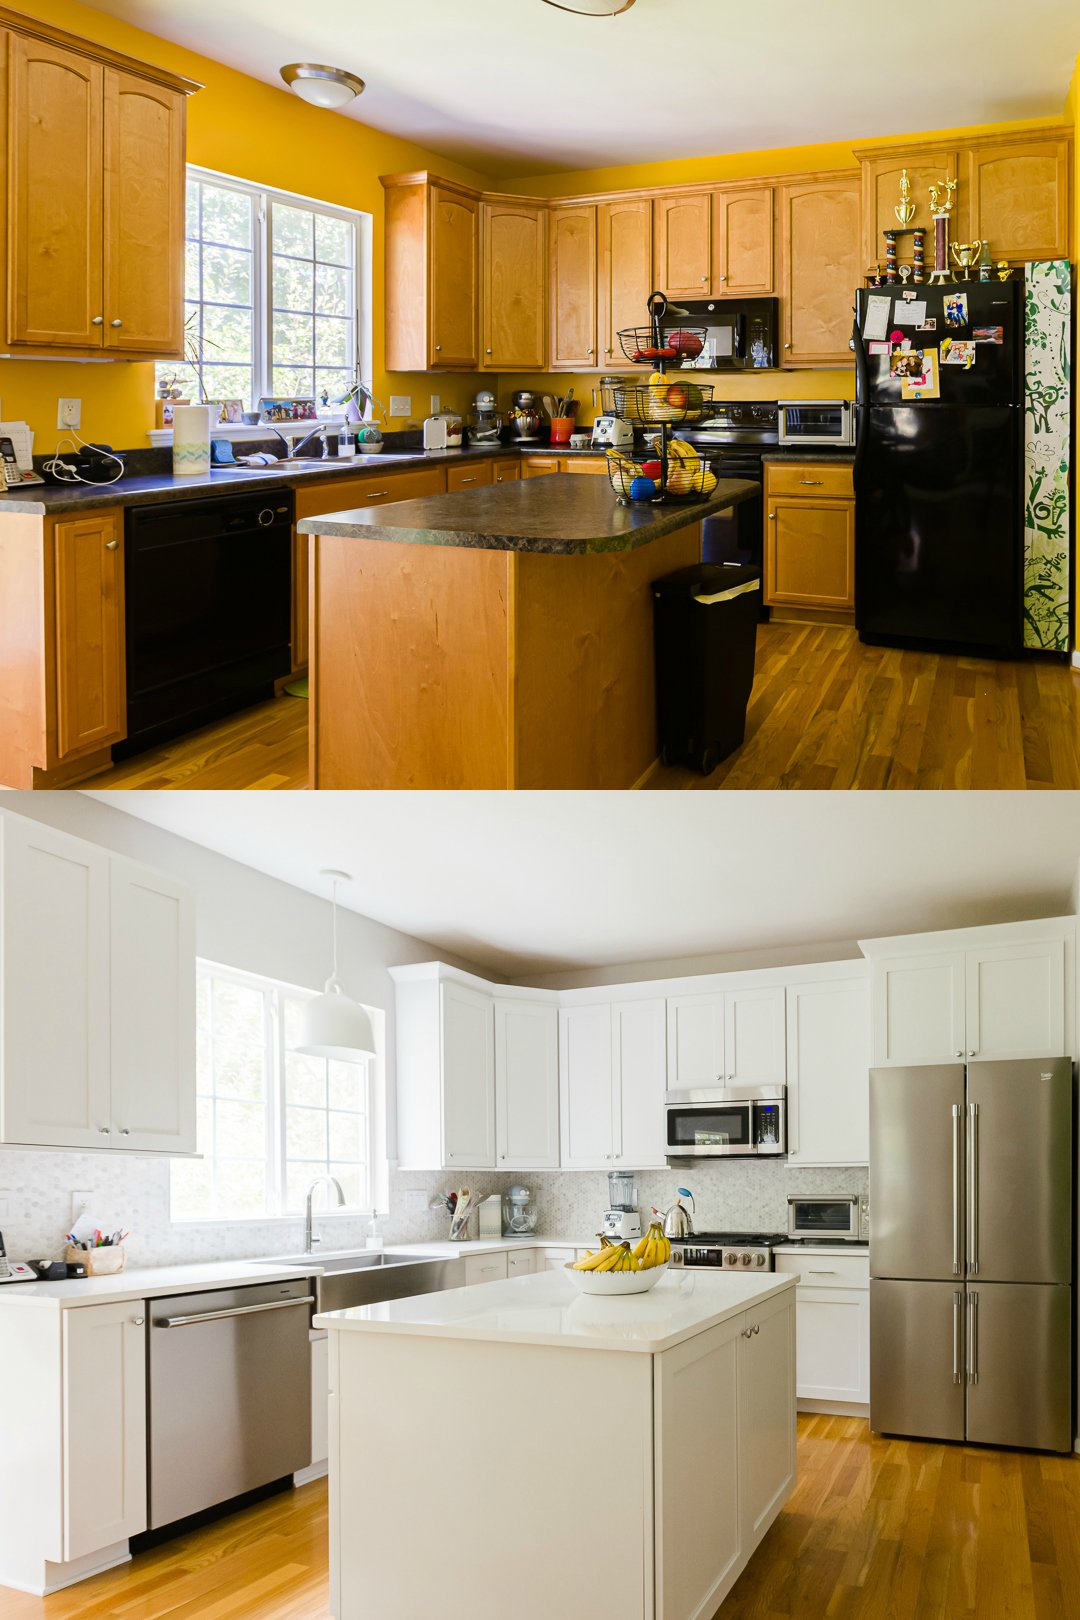 Before and after photos of our kitchen